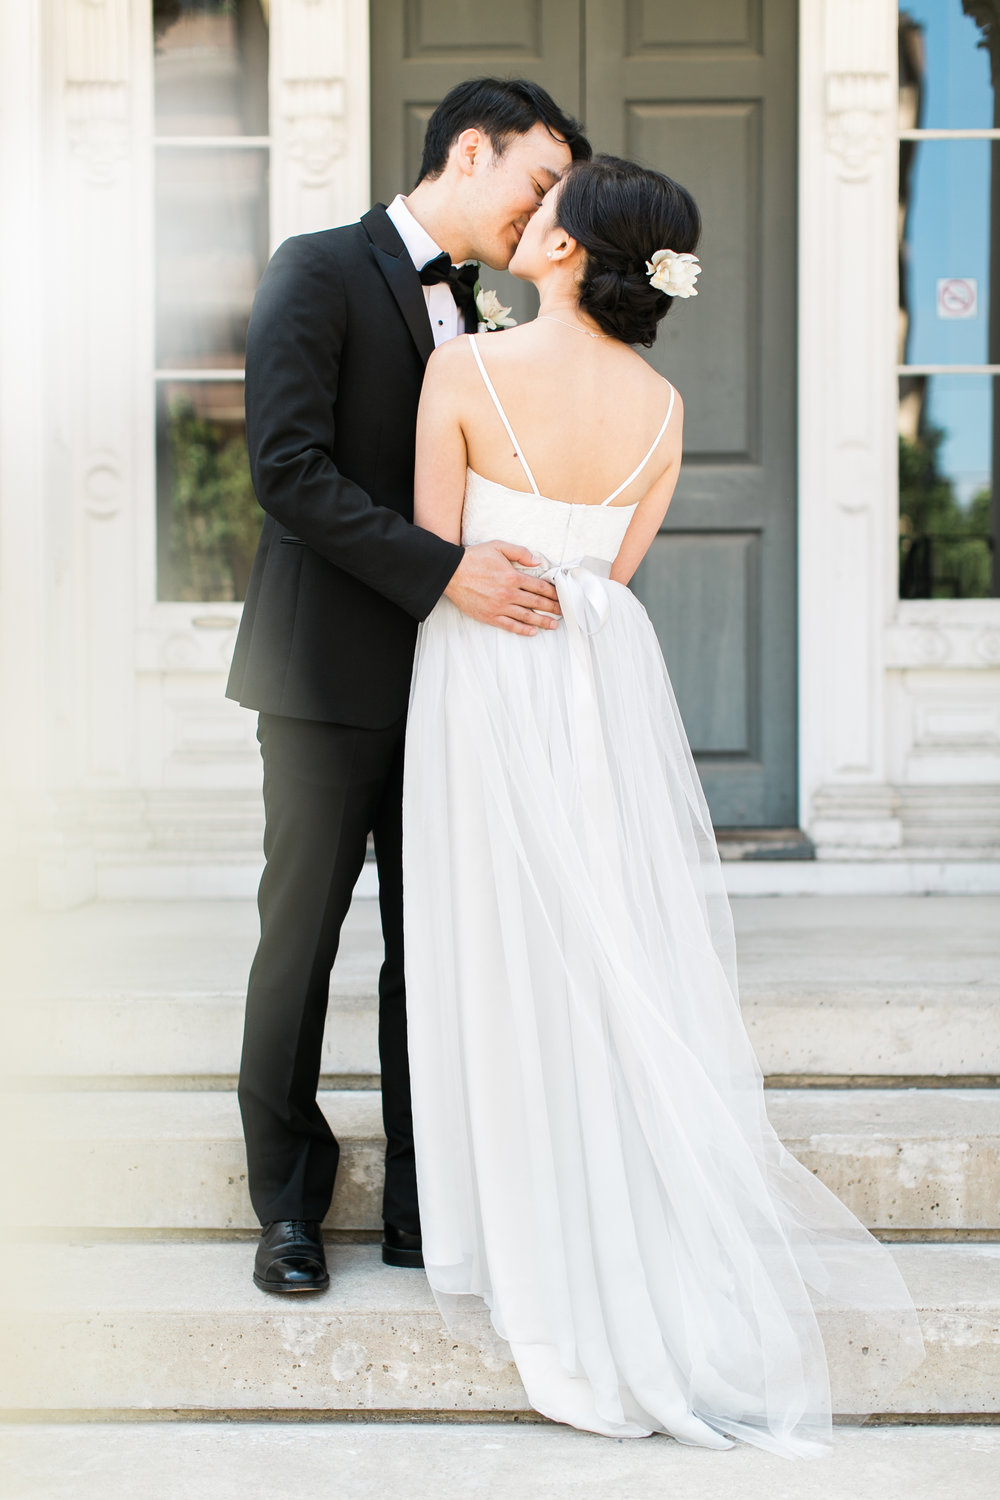 Bridal photos in downtown Toronto